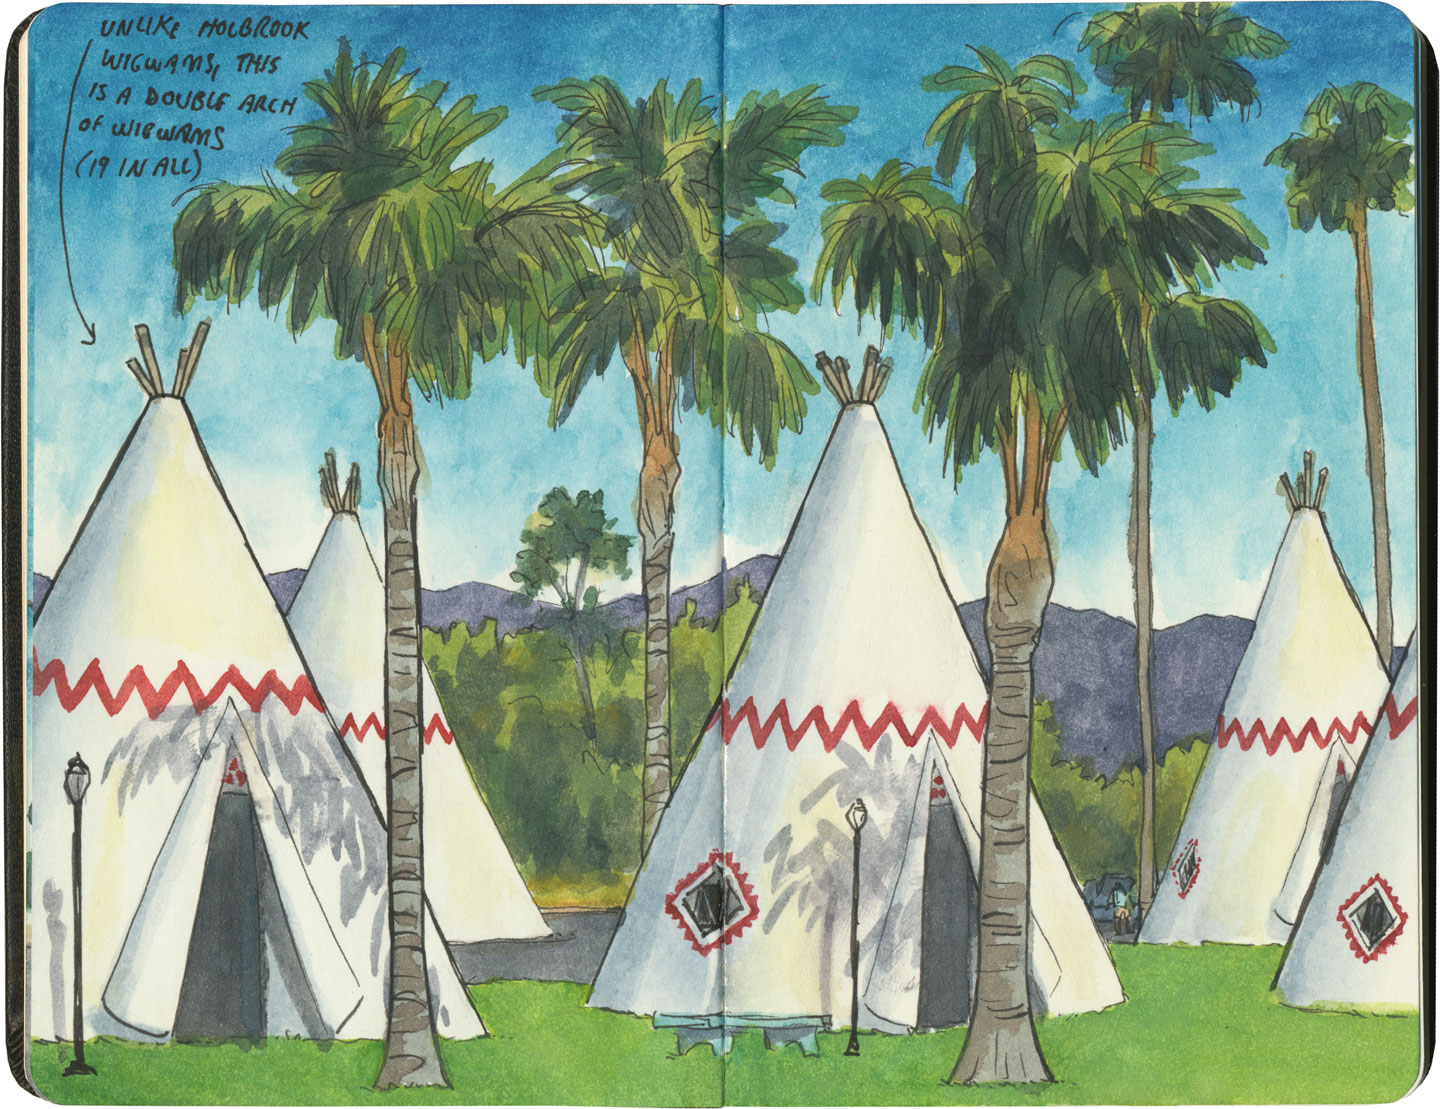 Wigwam Motel (California) sketch by Chandler O'Leary